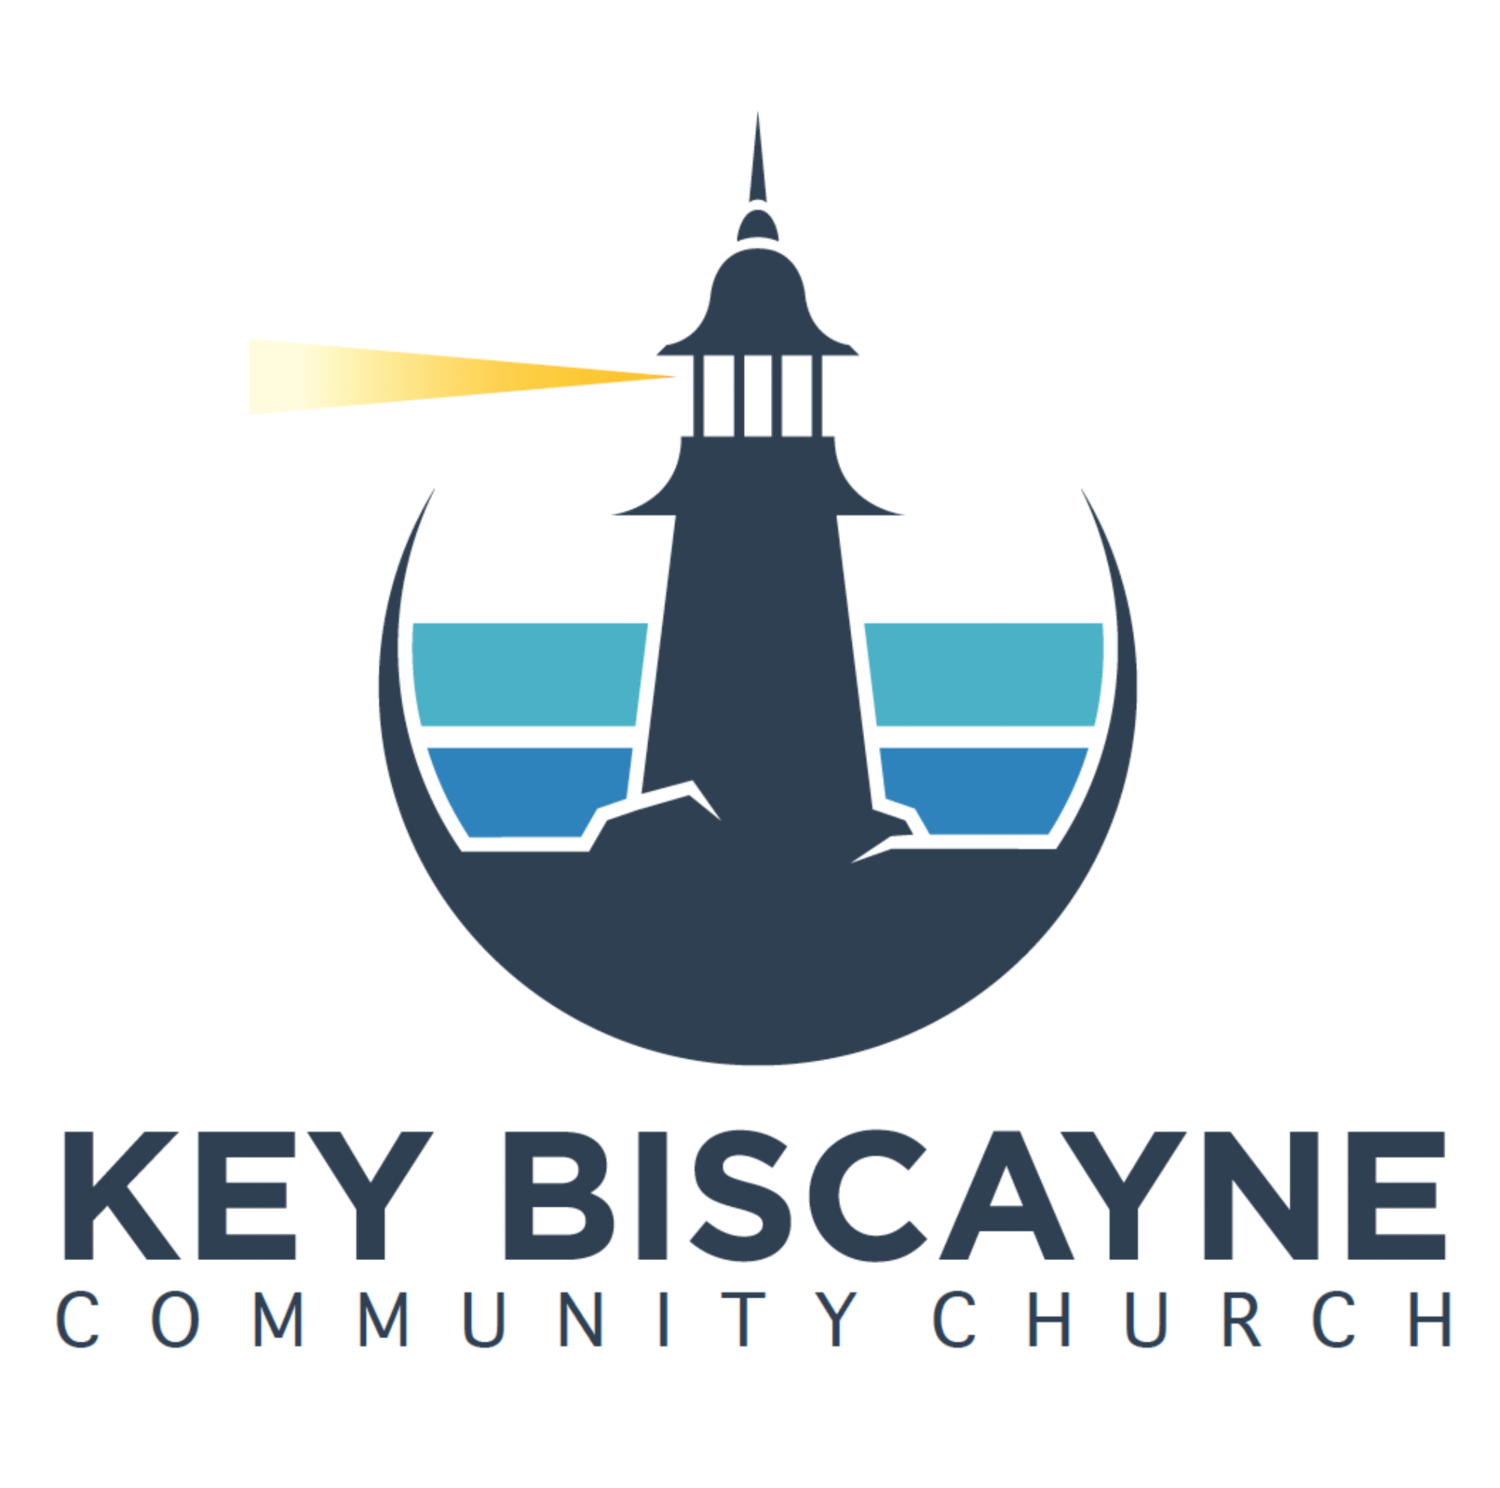 Key Biscayne Community Church